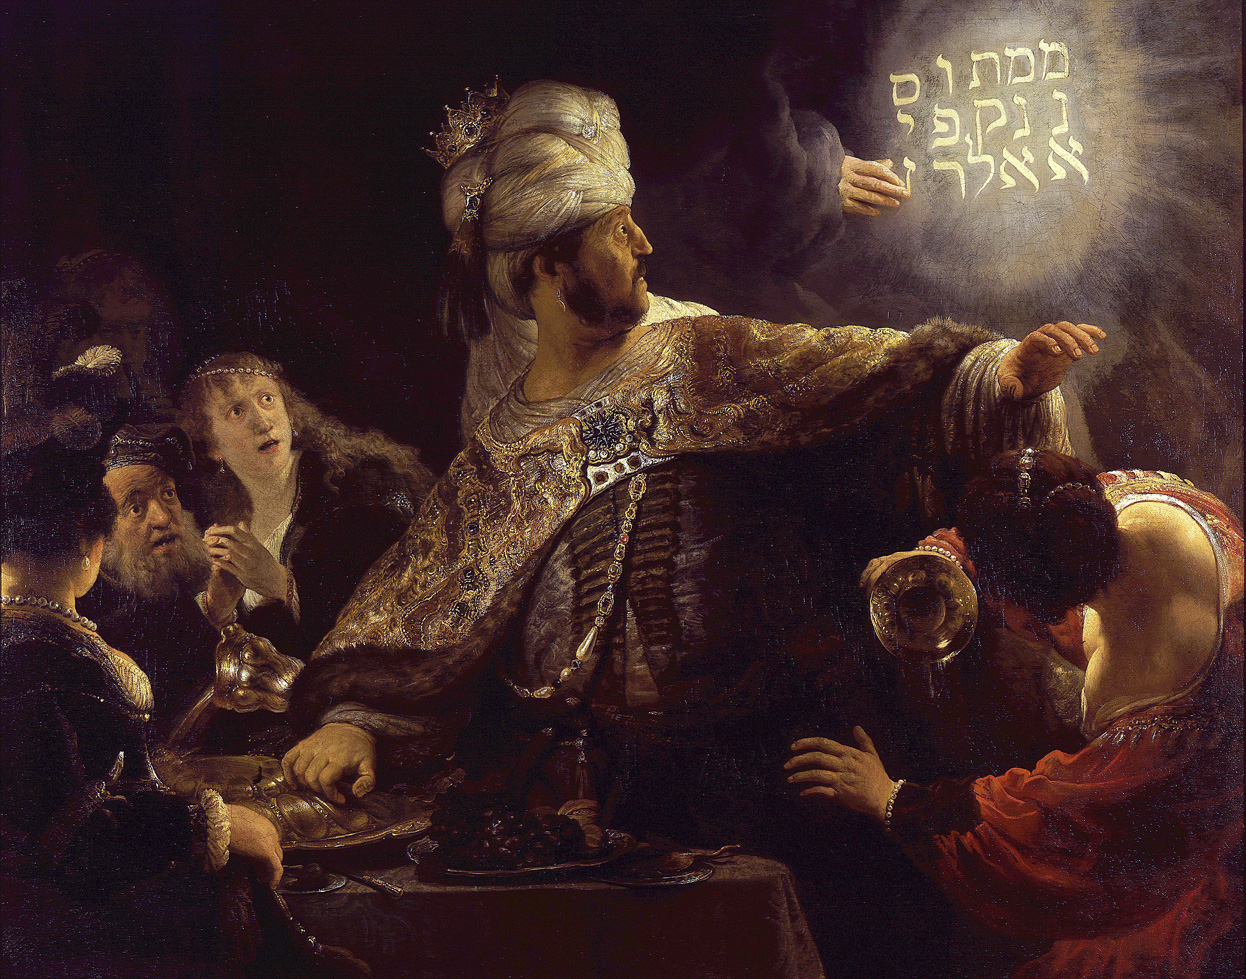 Belshazzar's Feast, by Rembrandt van Rijn, c. 1635. National Gallery, London.